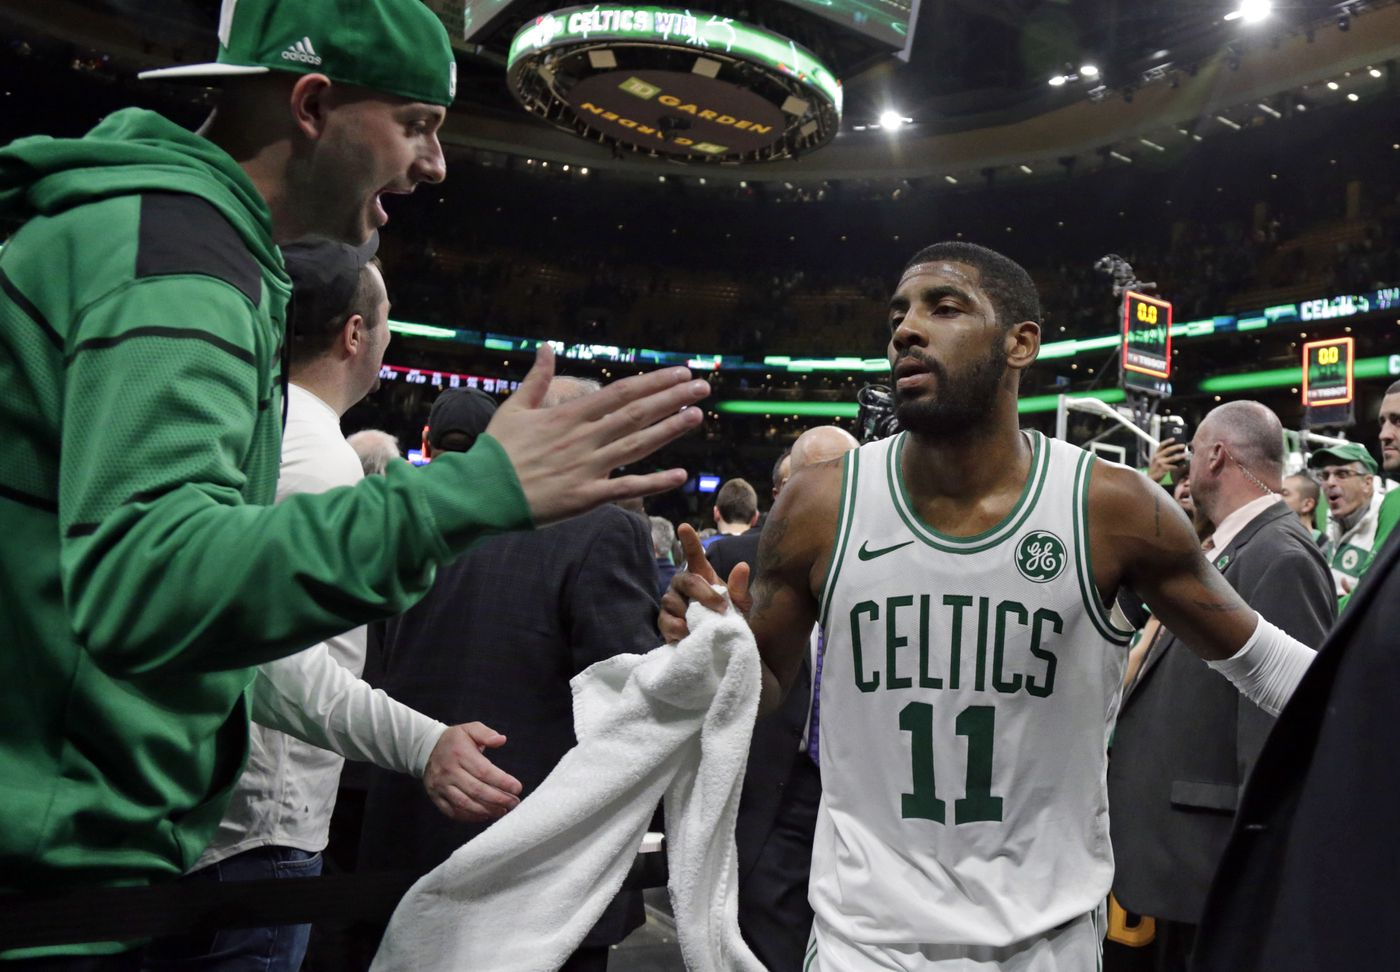 A fan reaches out to Boston Celtics guard Kyrie Irving (11) after an NBA